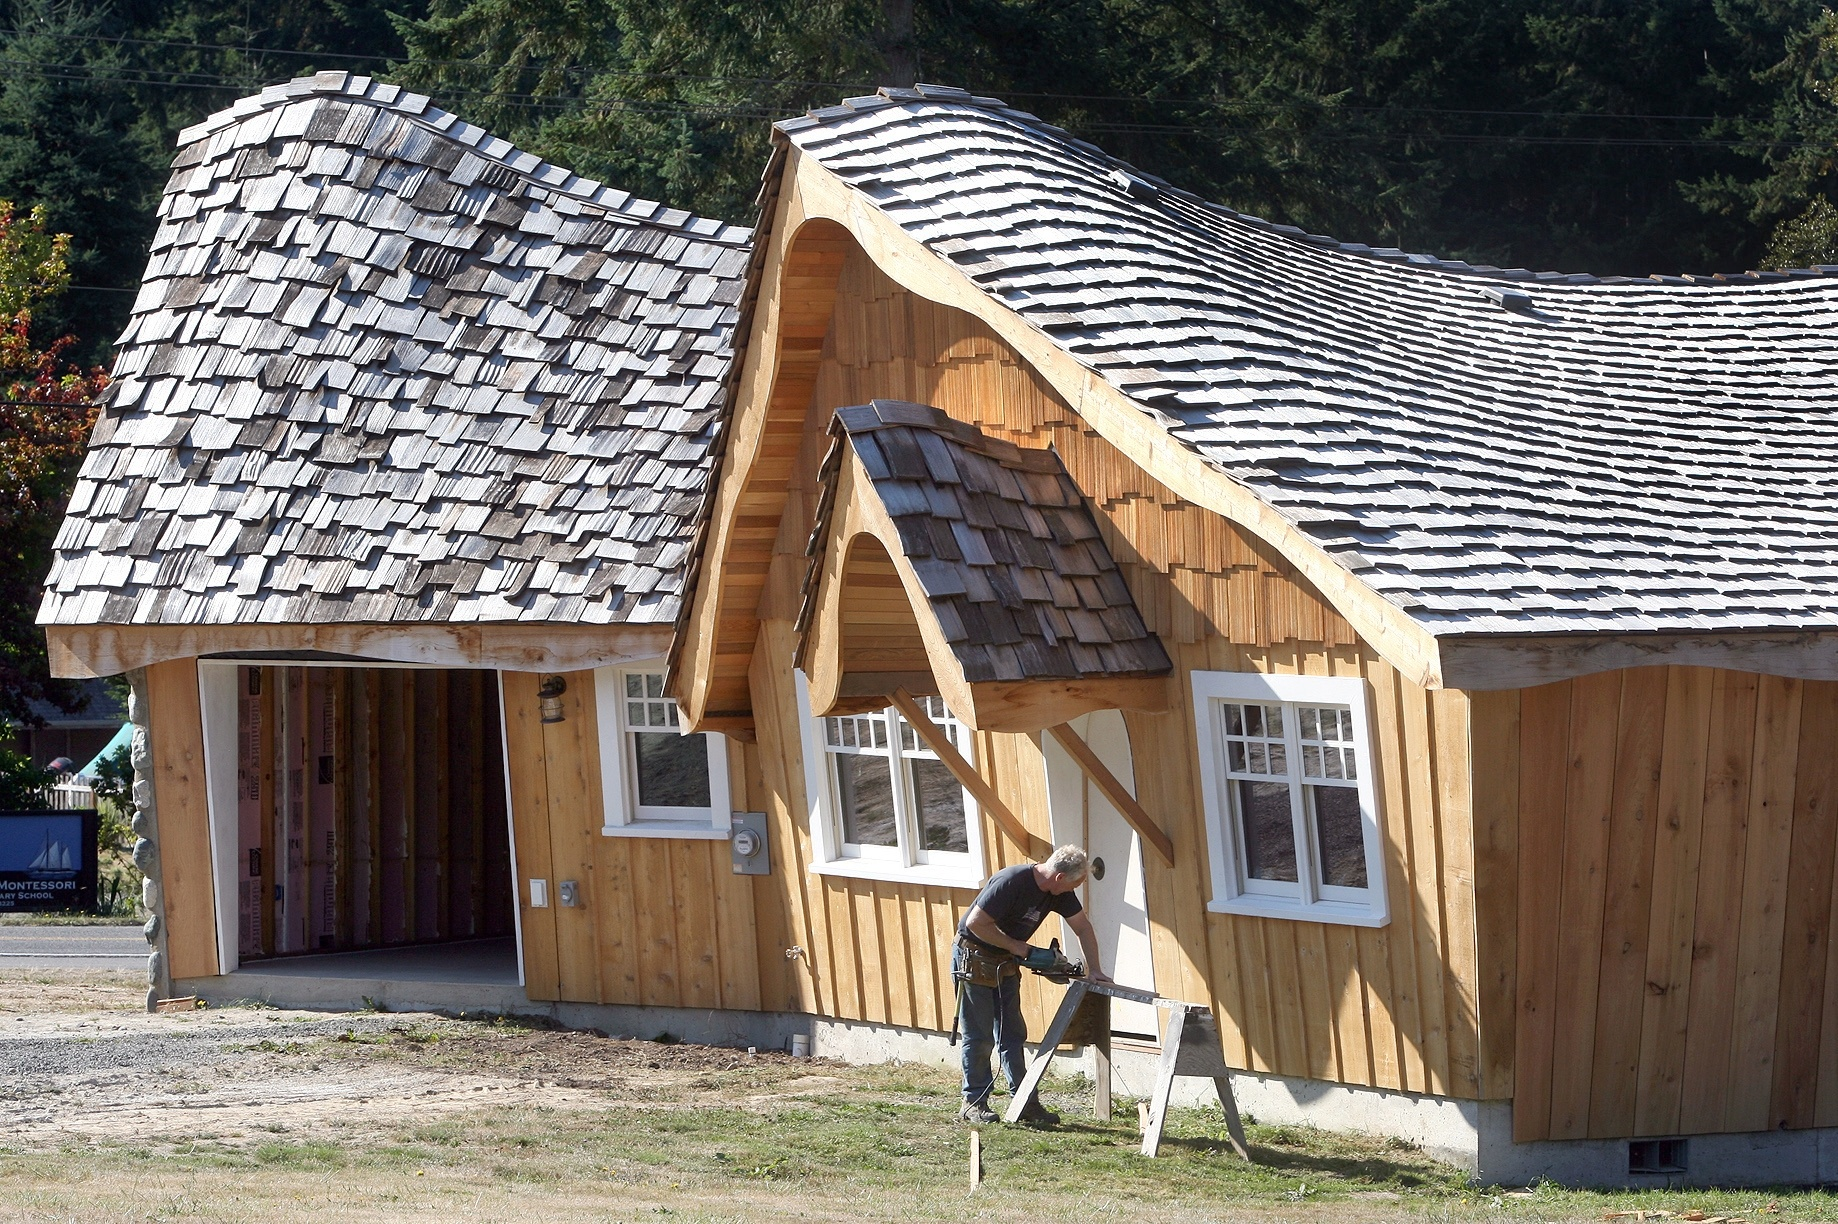 How To Build A Hobbit House Hobbit At For Humanity Man Builds Unconventional Cottage The